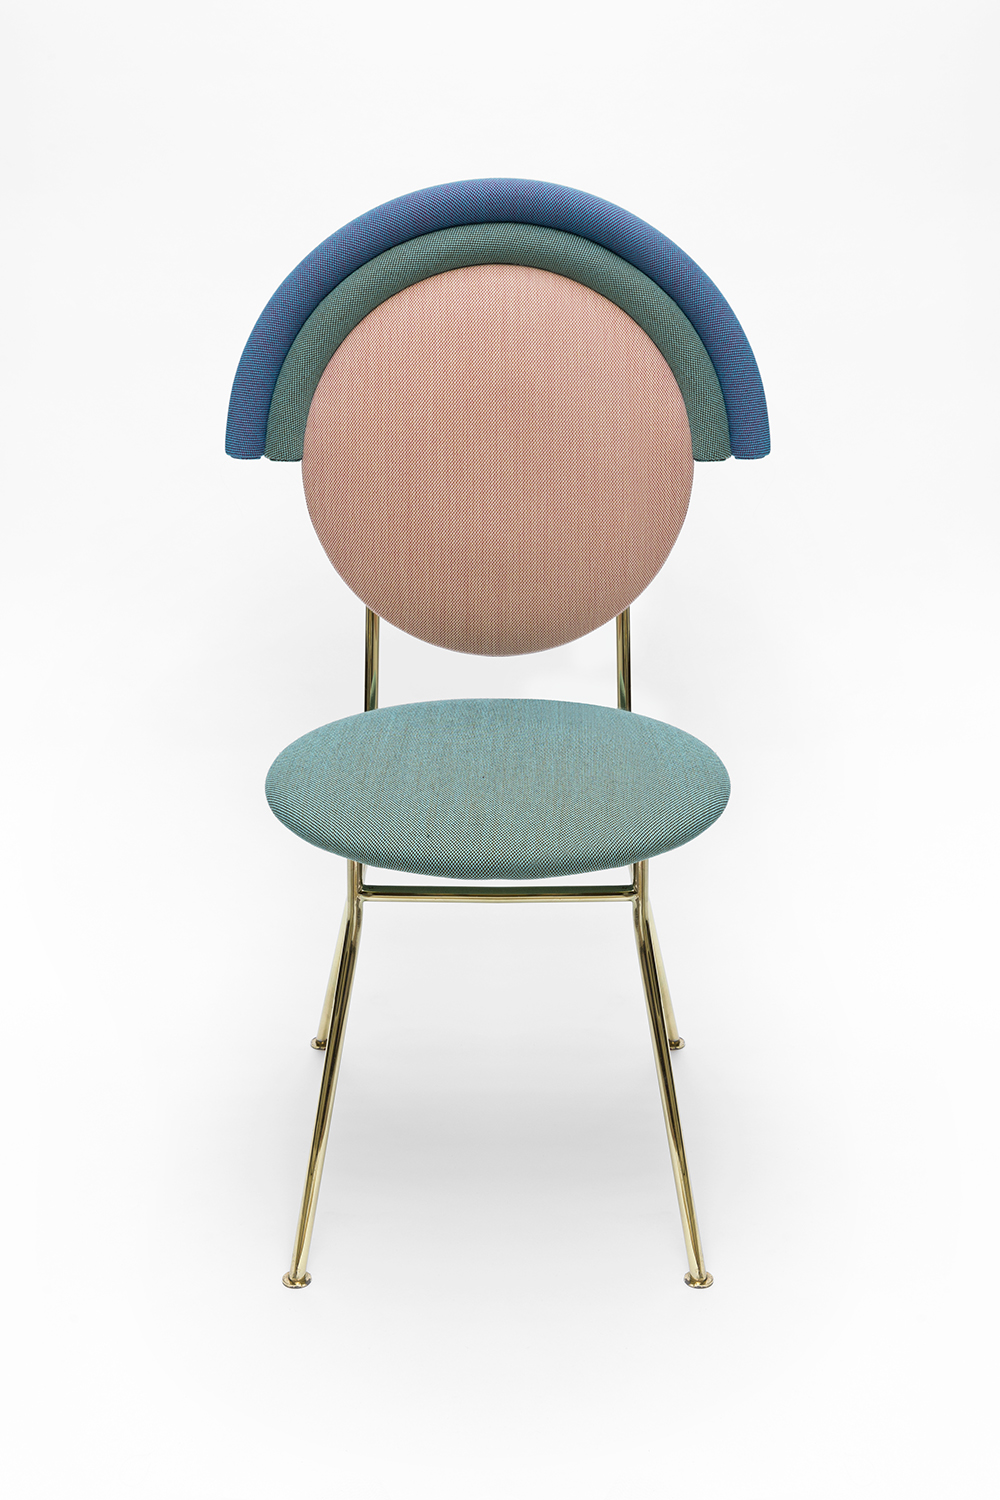 merve kahraman products interiors iris chair front.jpg